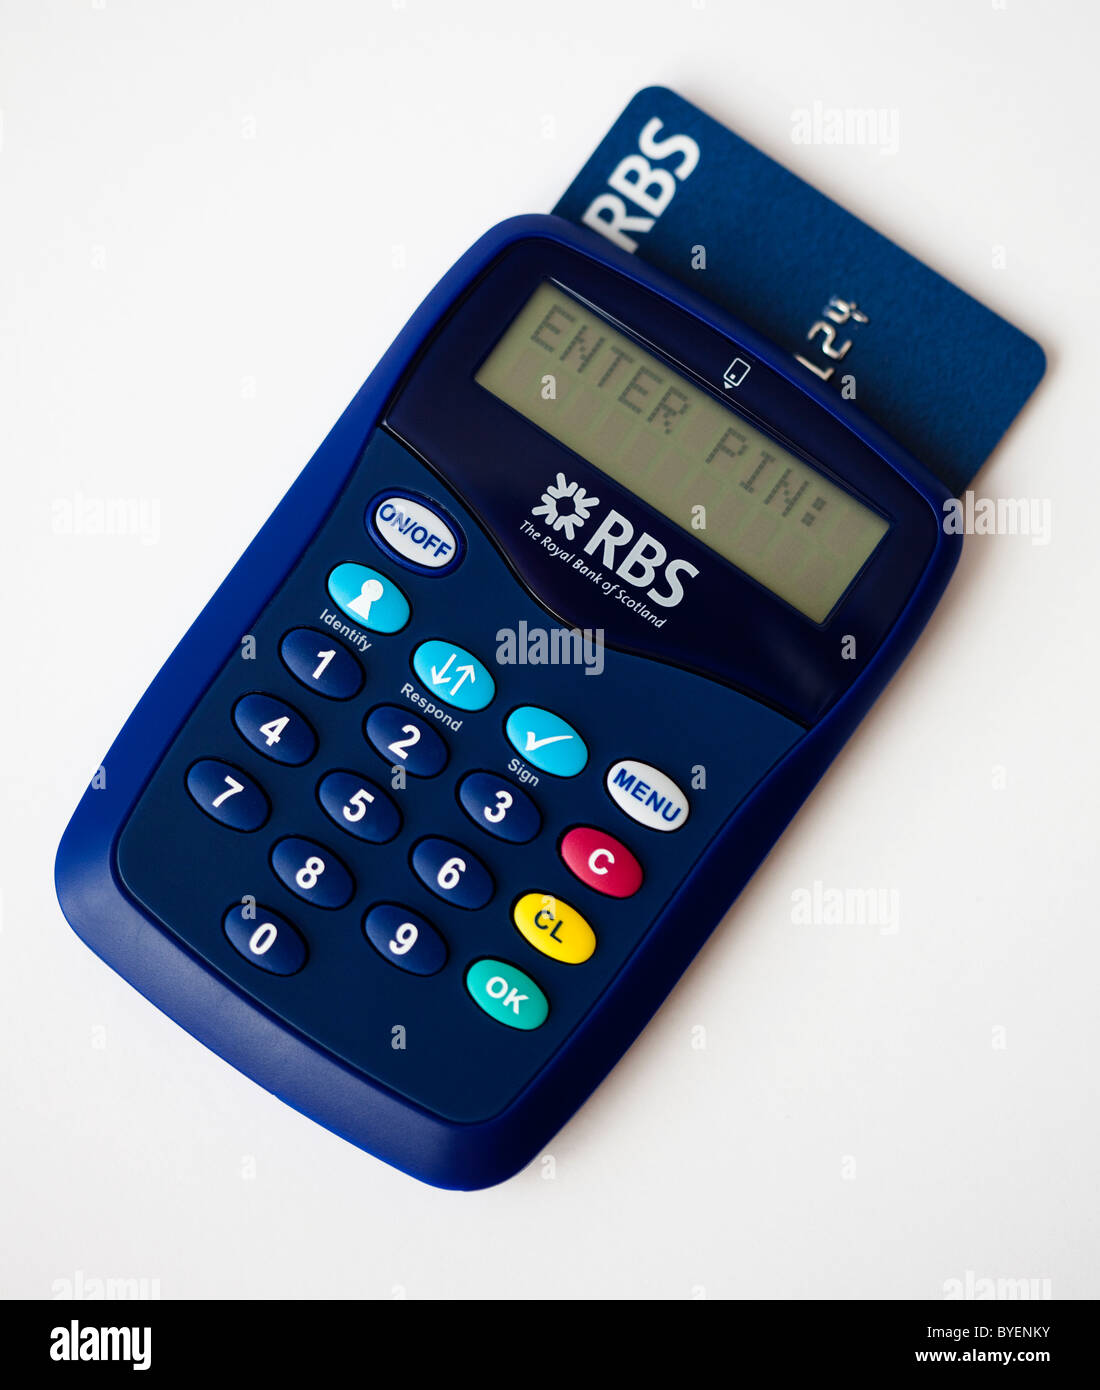 RBS Royal Bank Of Scotland Digital Banking Card-Reader